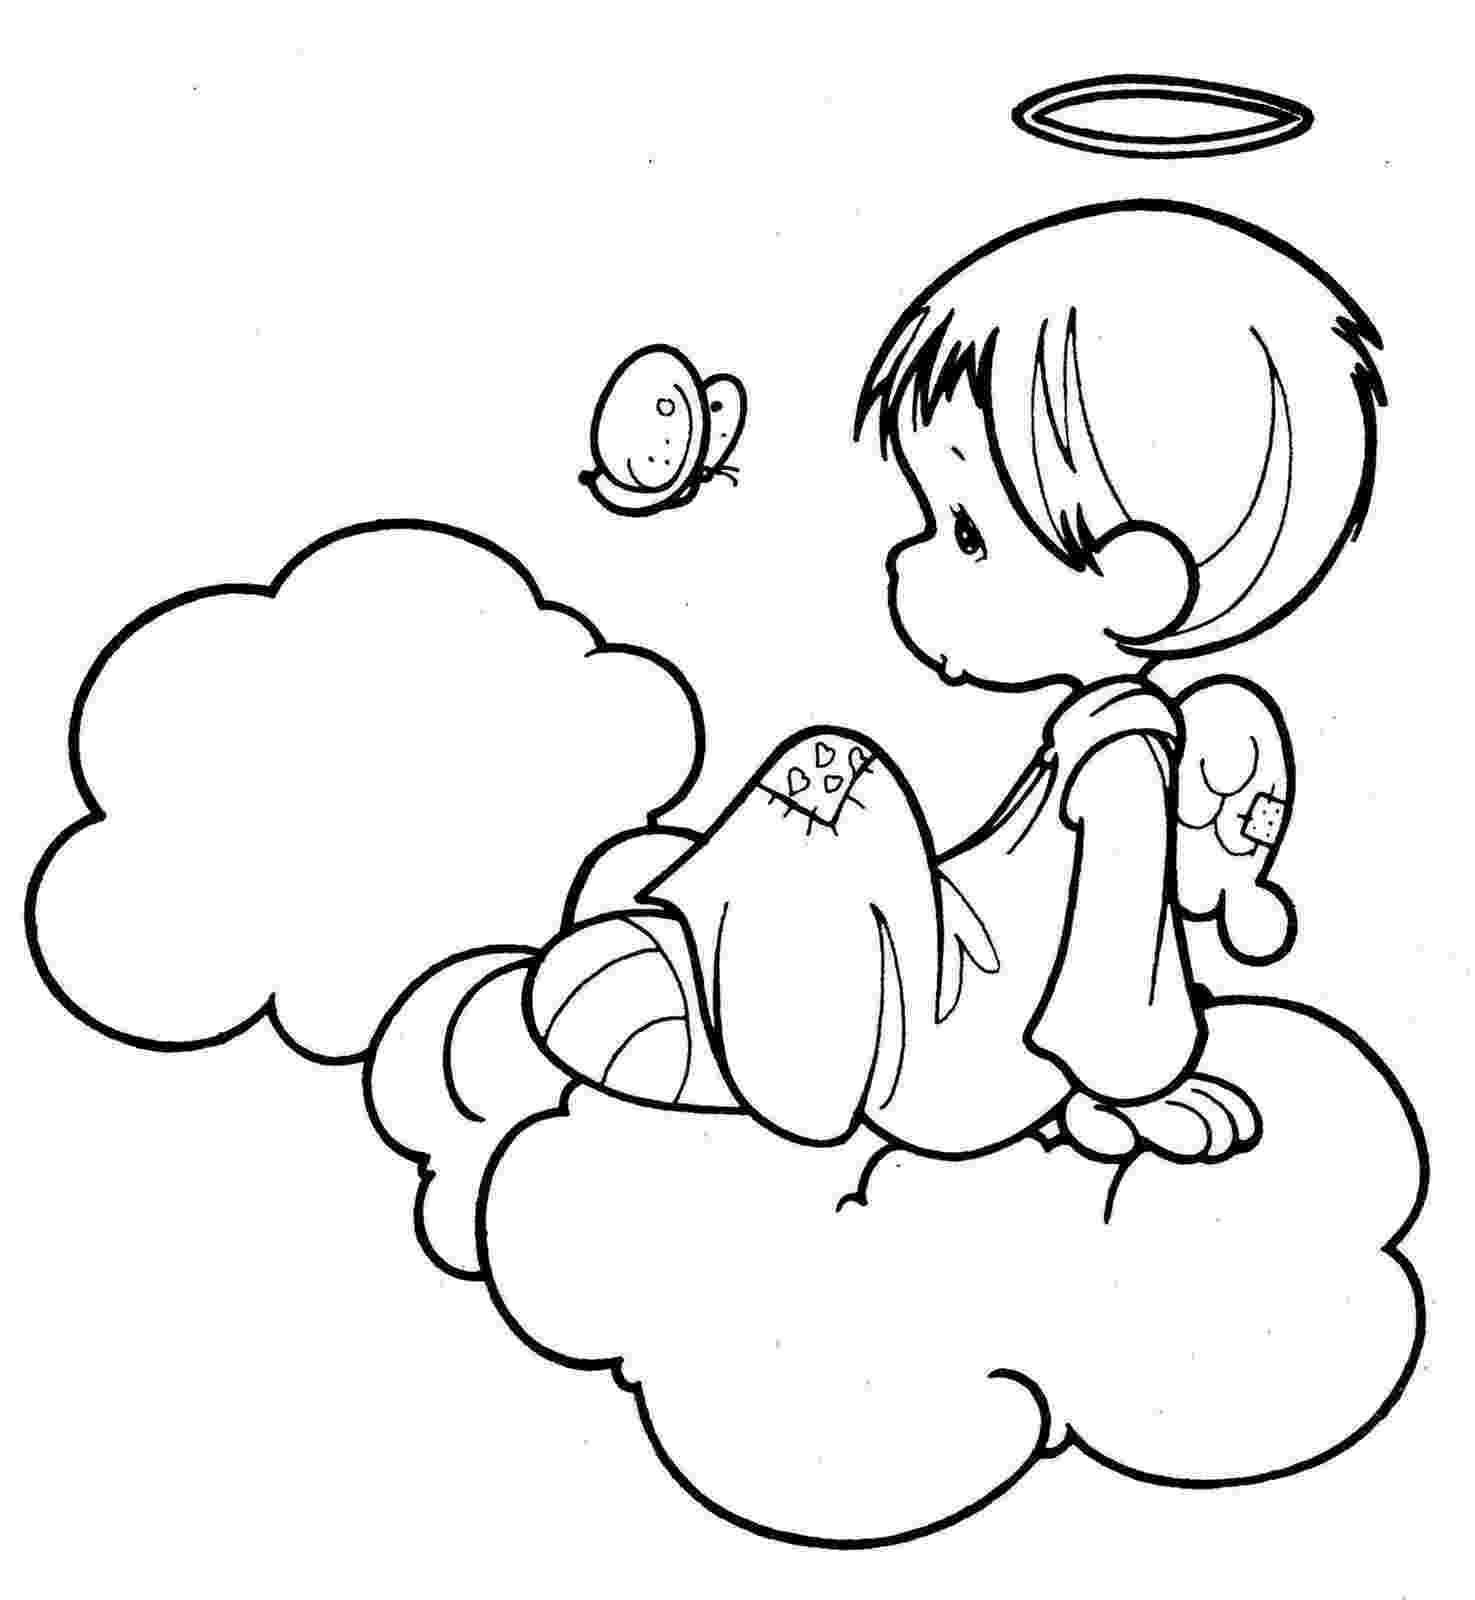 coloring pages of angels angels coloring page graphicsfairy the graphics fairy angels coloring of pages